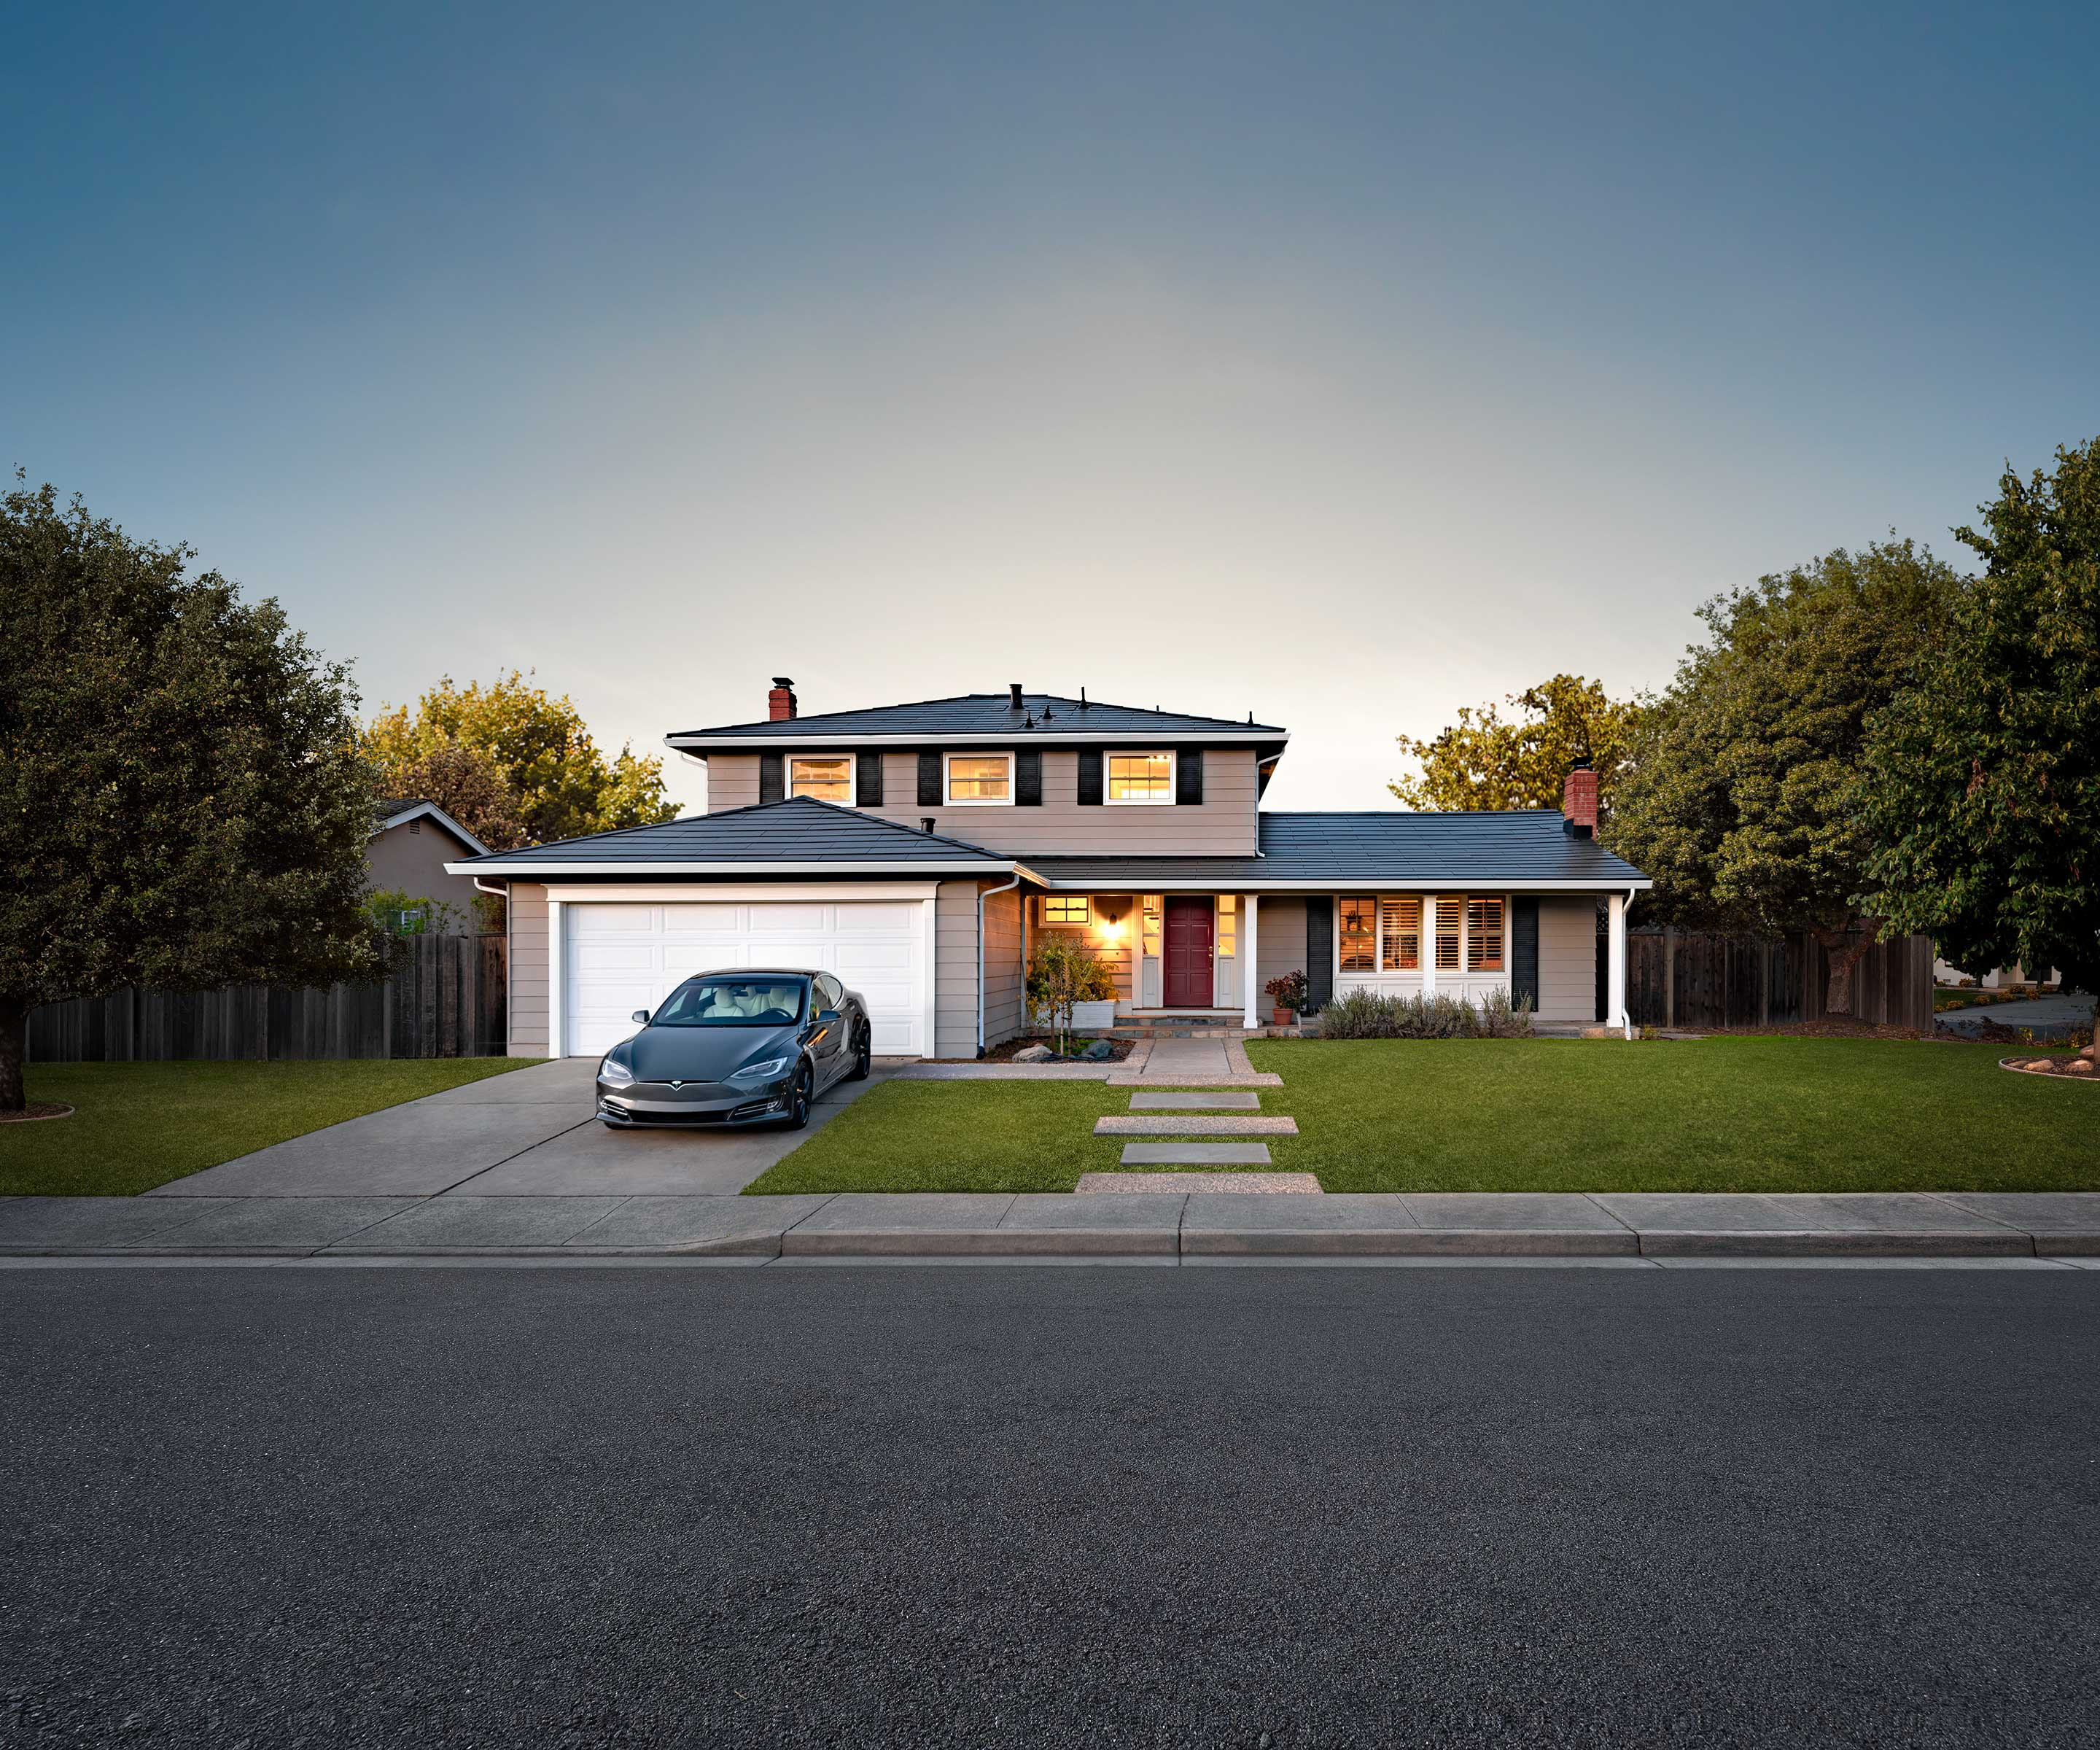 Contemporary style home outfitted with Tesla Solar Roof